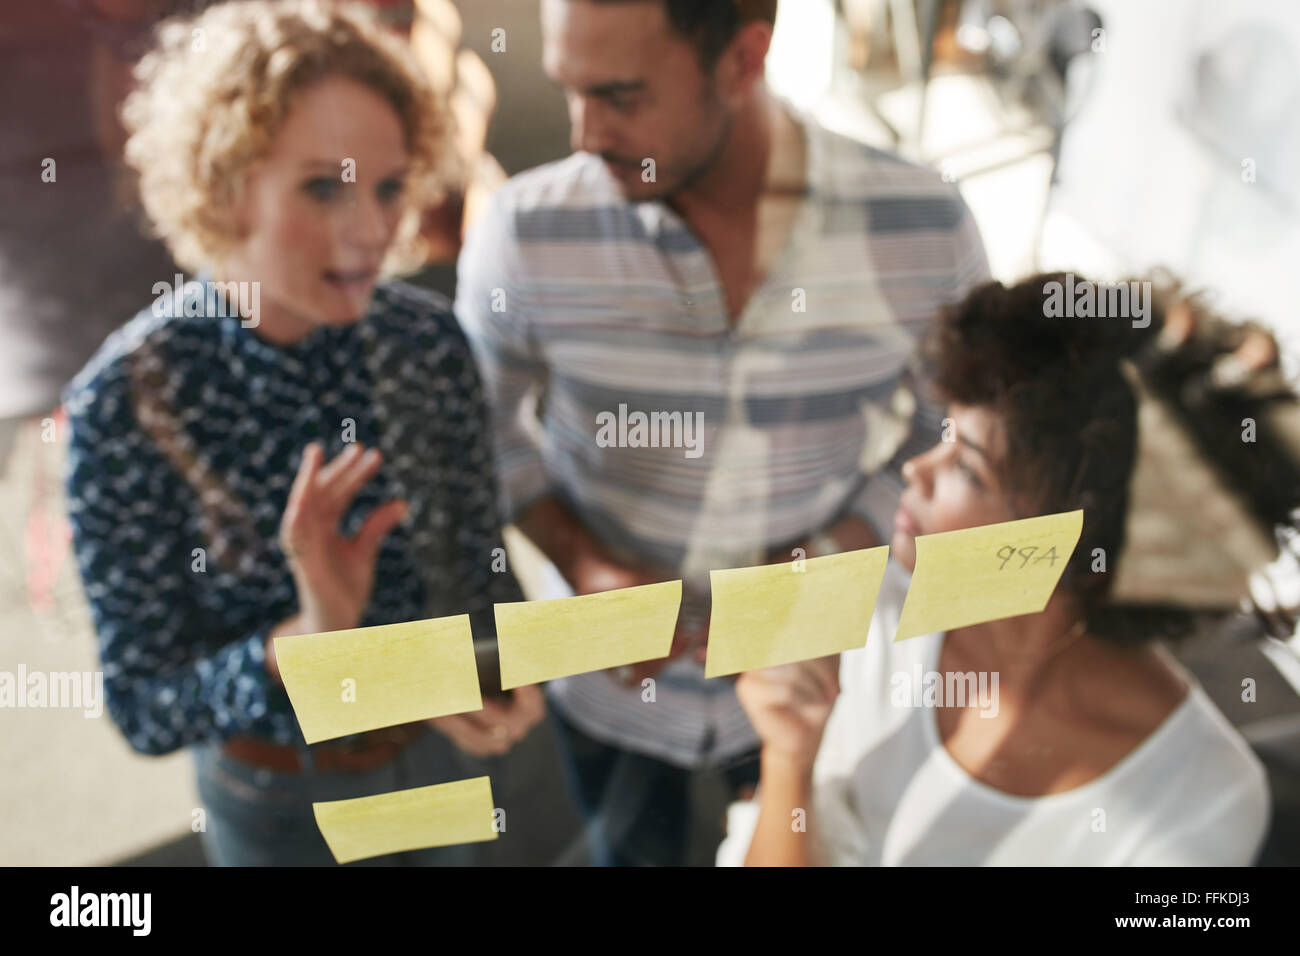 Three business people having a meeting in office. They are standing in front of glass wall with post it notes and - Stock Image